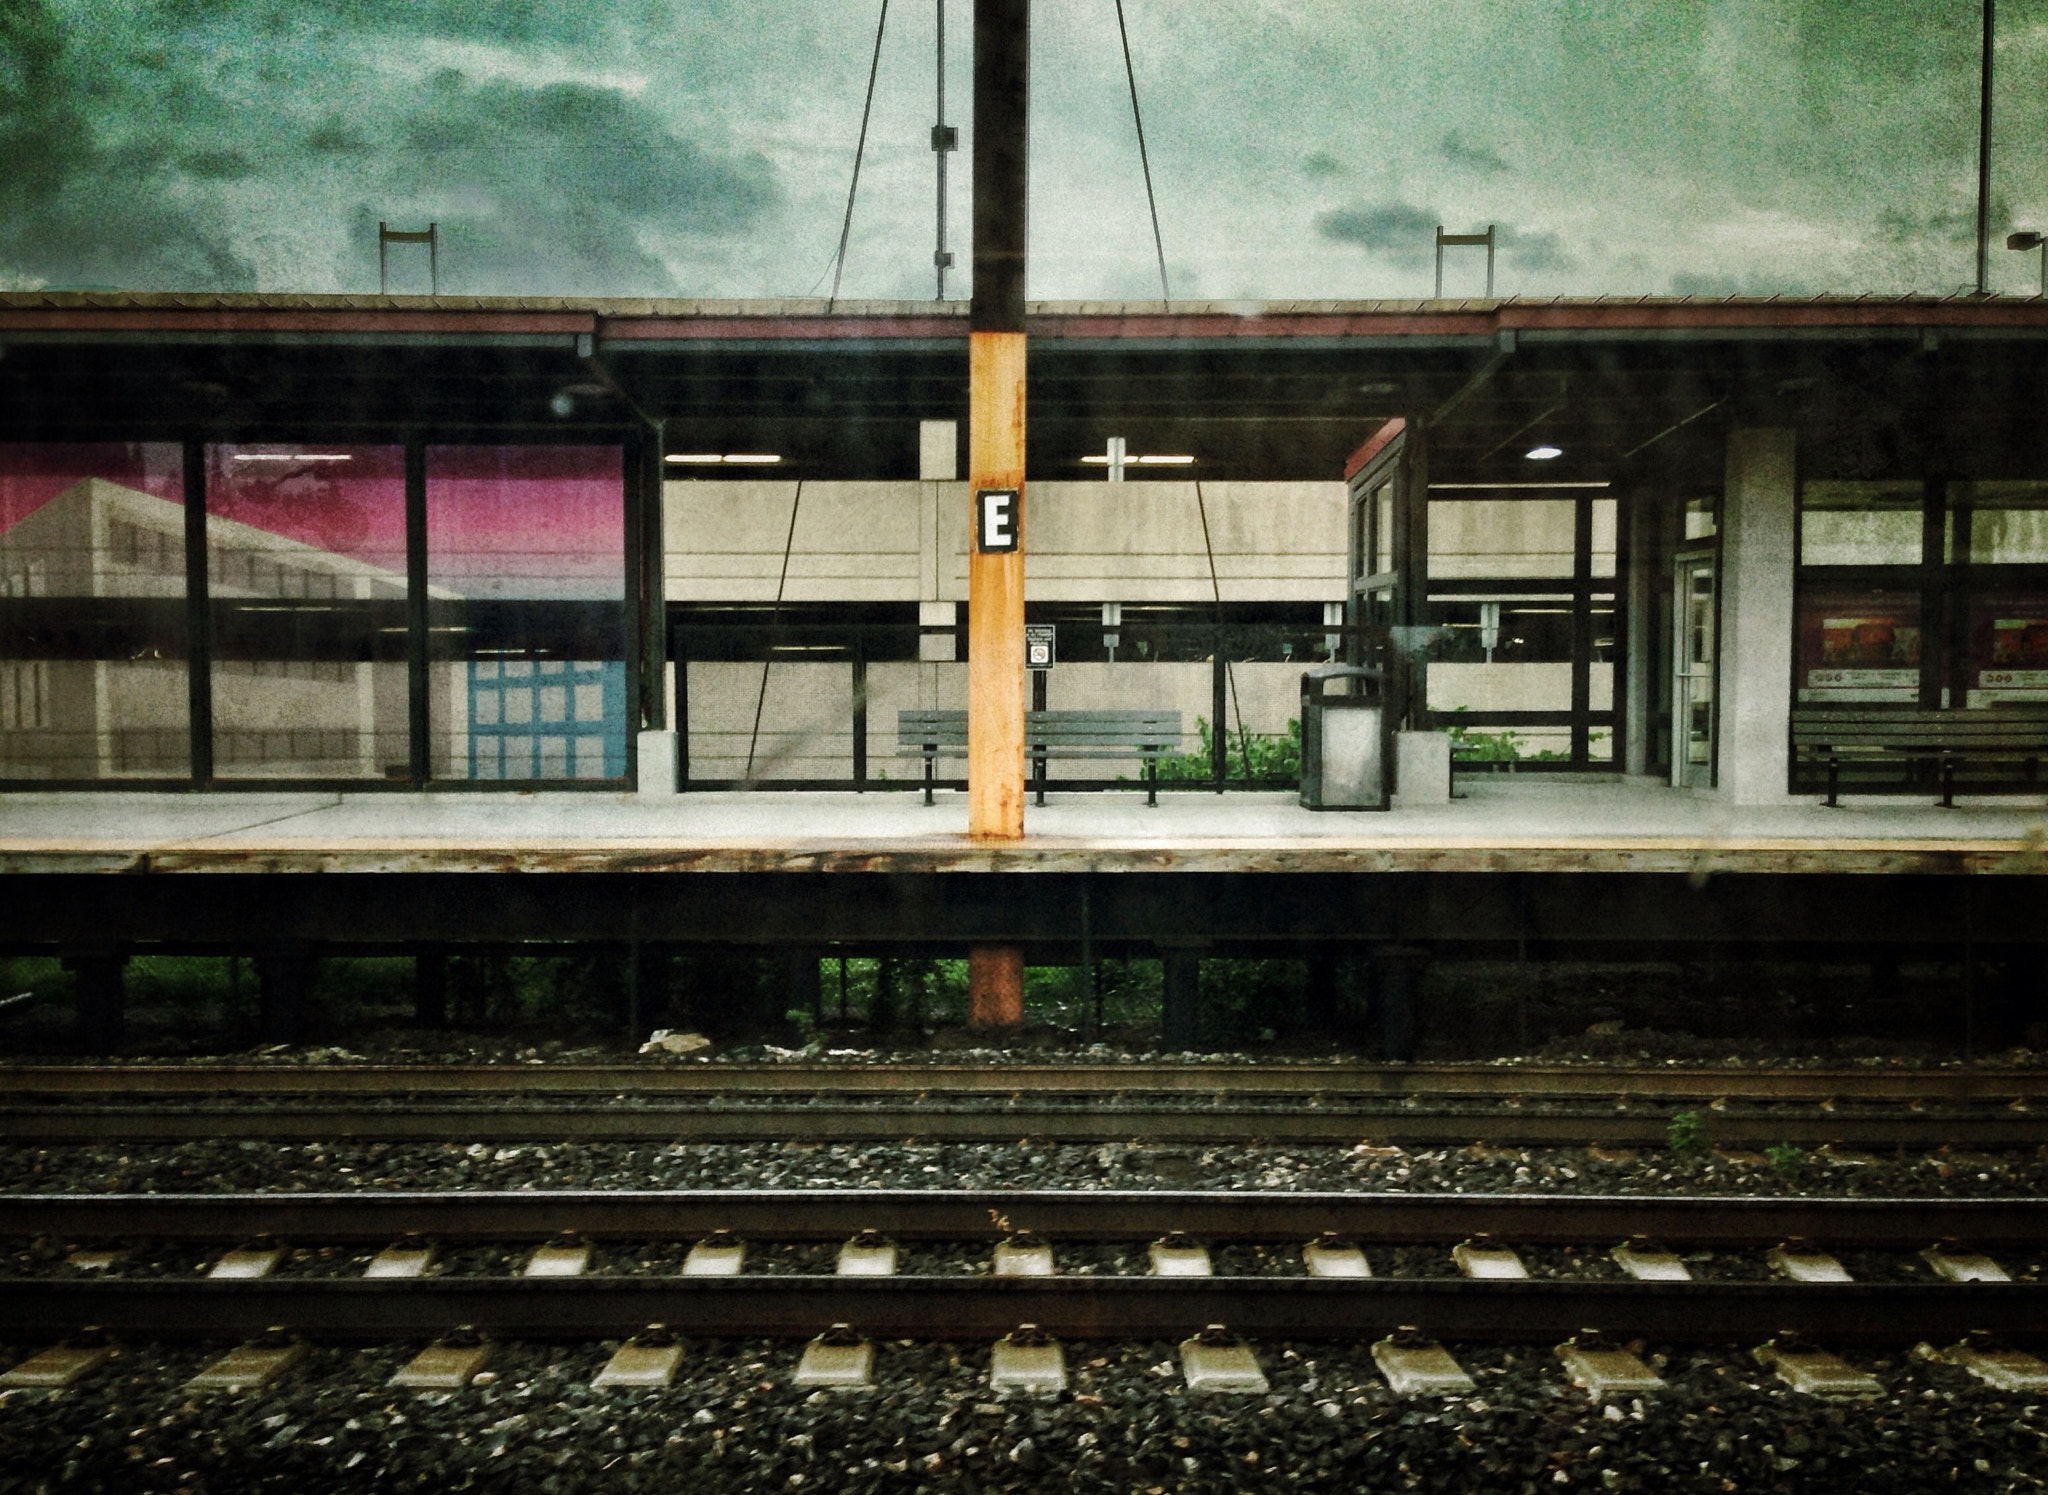 Photograph Train station by Teelip Lim on 500px